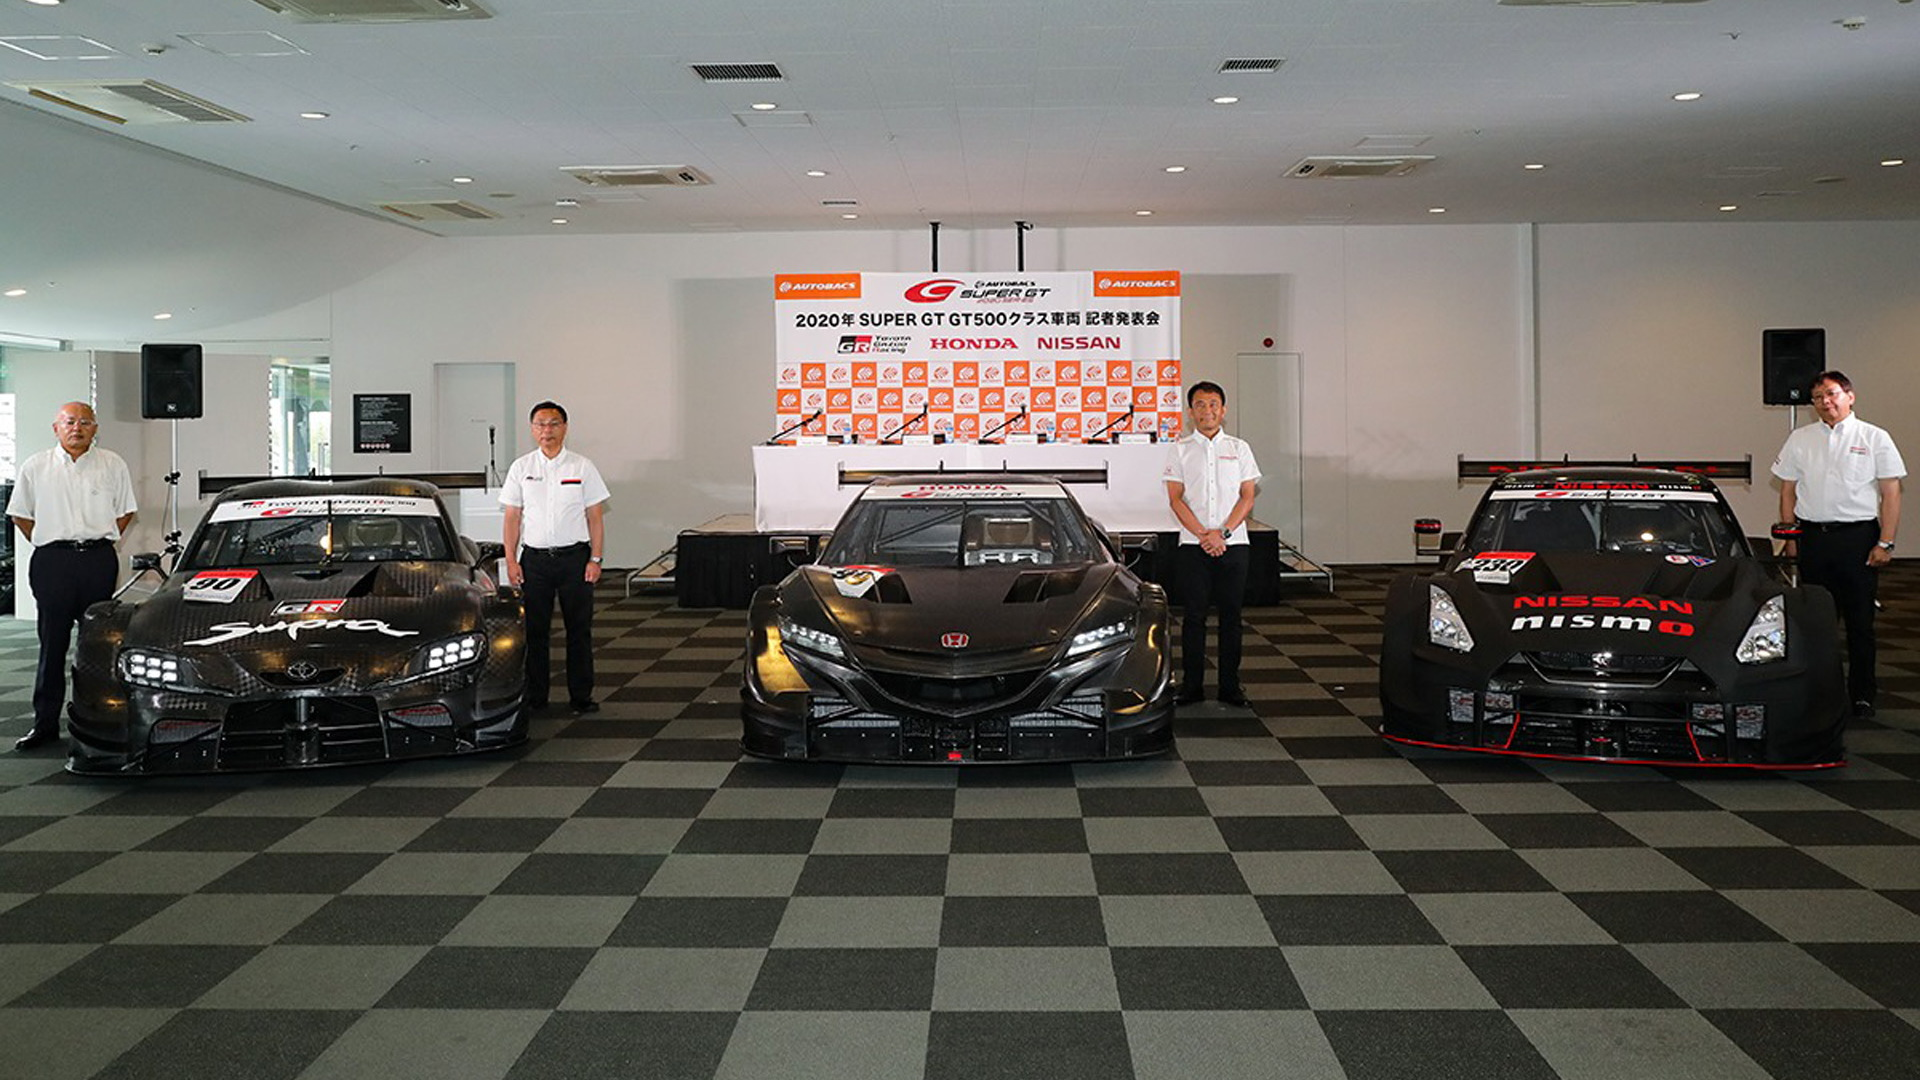 2020 Toyota GR Supra, Honda NSX-GT and Nissan GT-R Nismo GT500 Super GT race cars